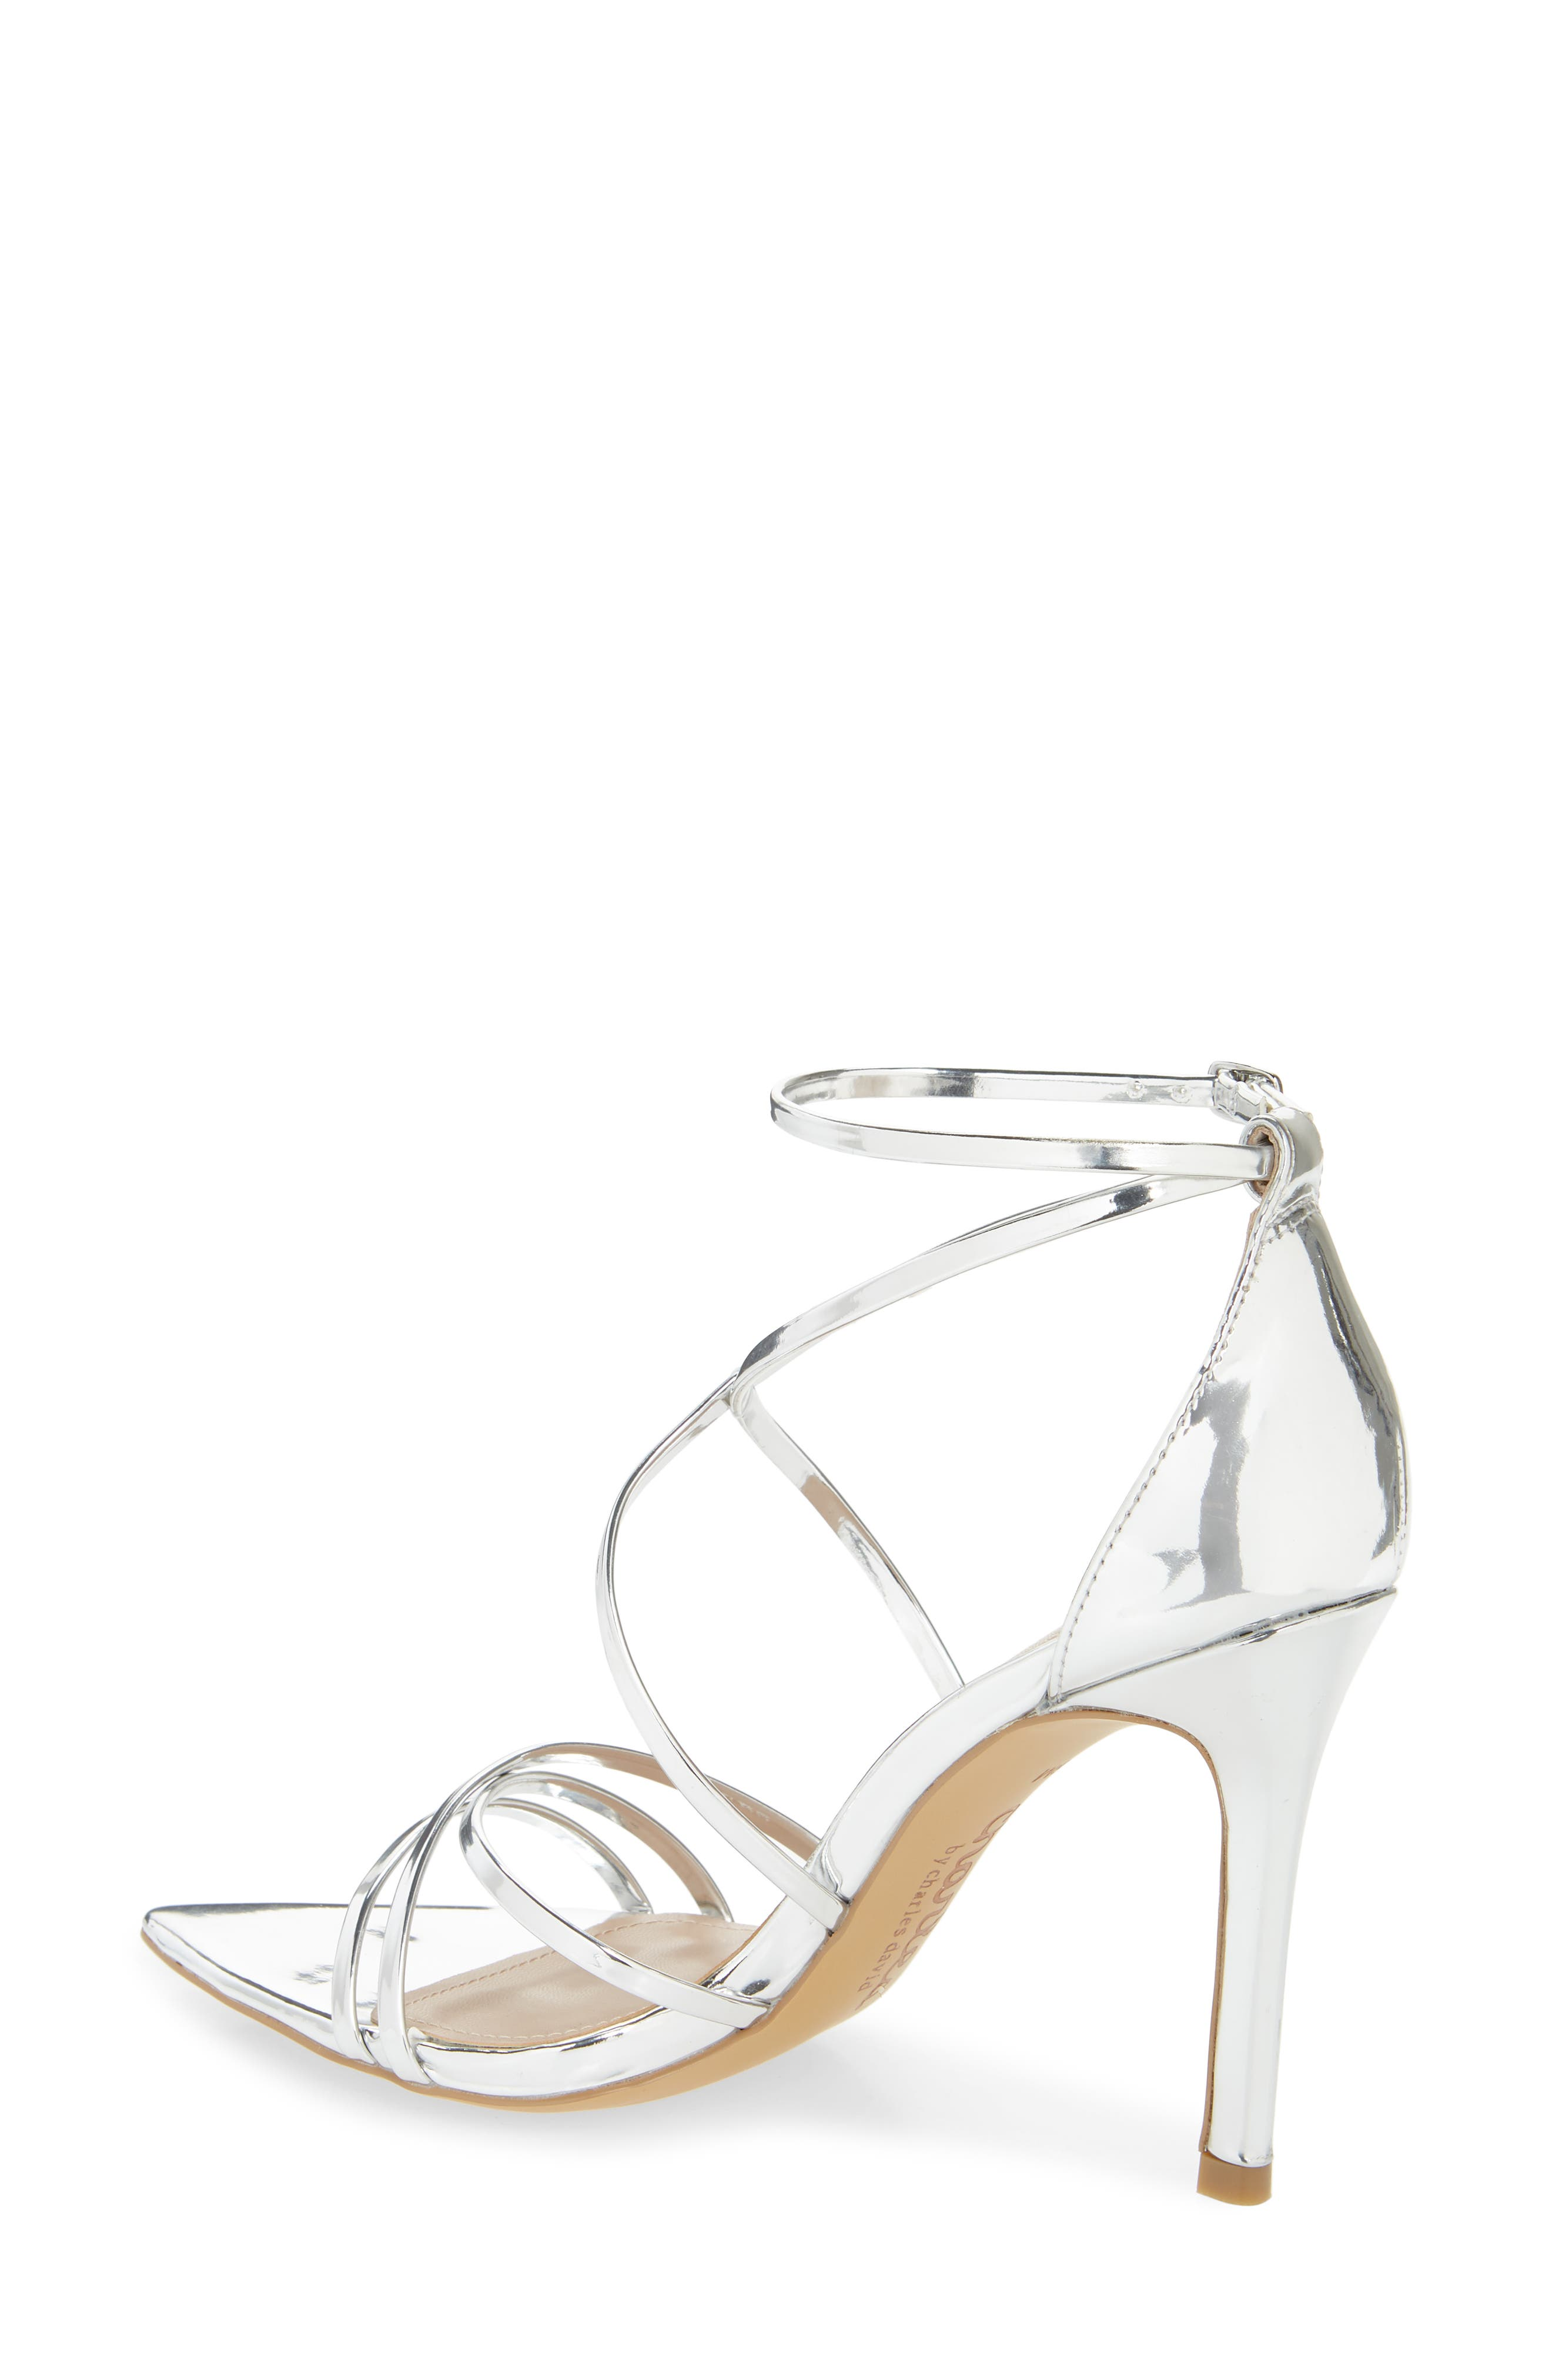 CHARLES BY CHARLES DAVID, Trickster Strappy Sandal, Alternate thumbnail 2, color, SILVER FAUX LEATHER